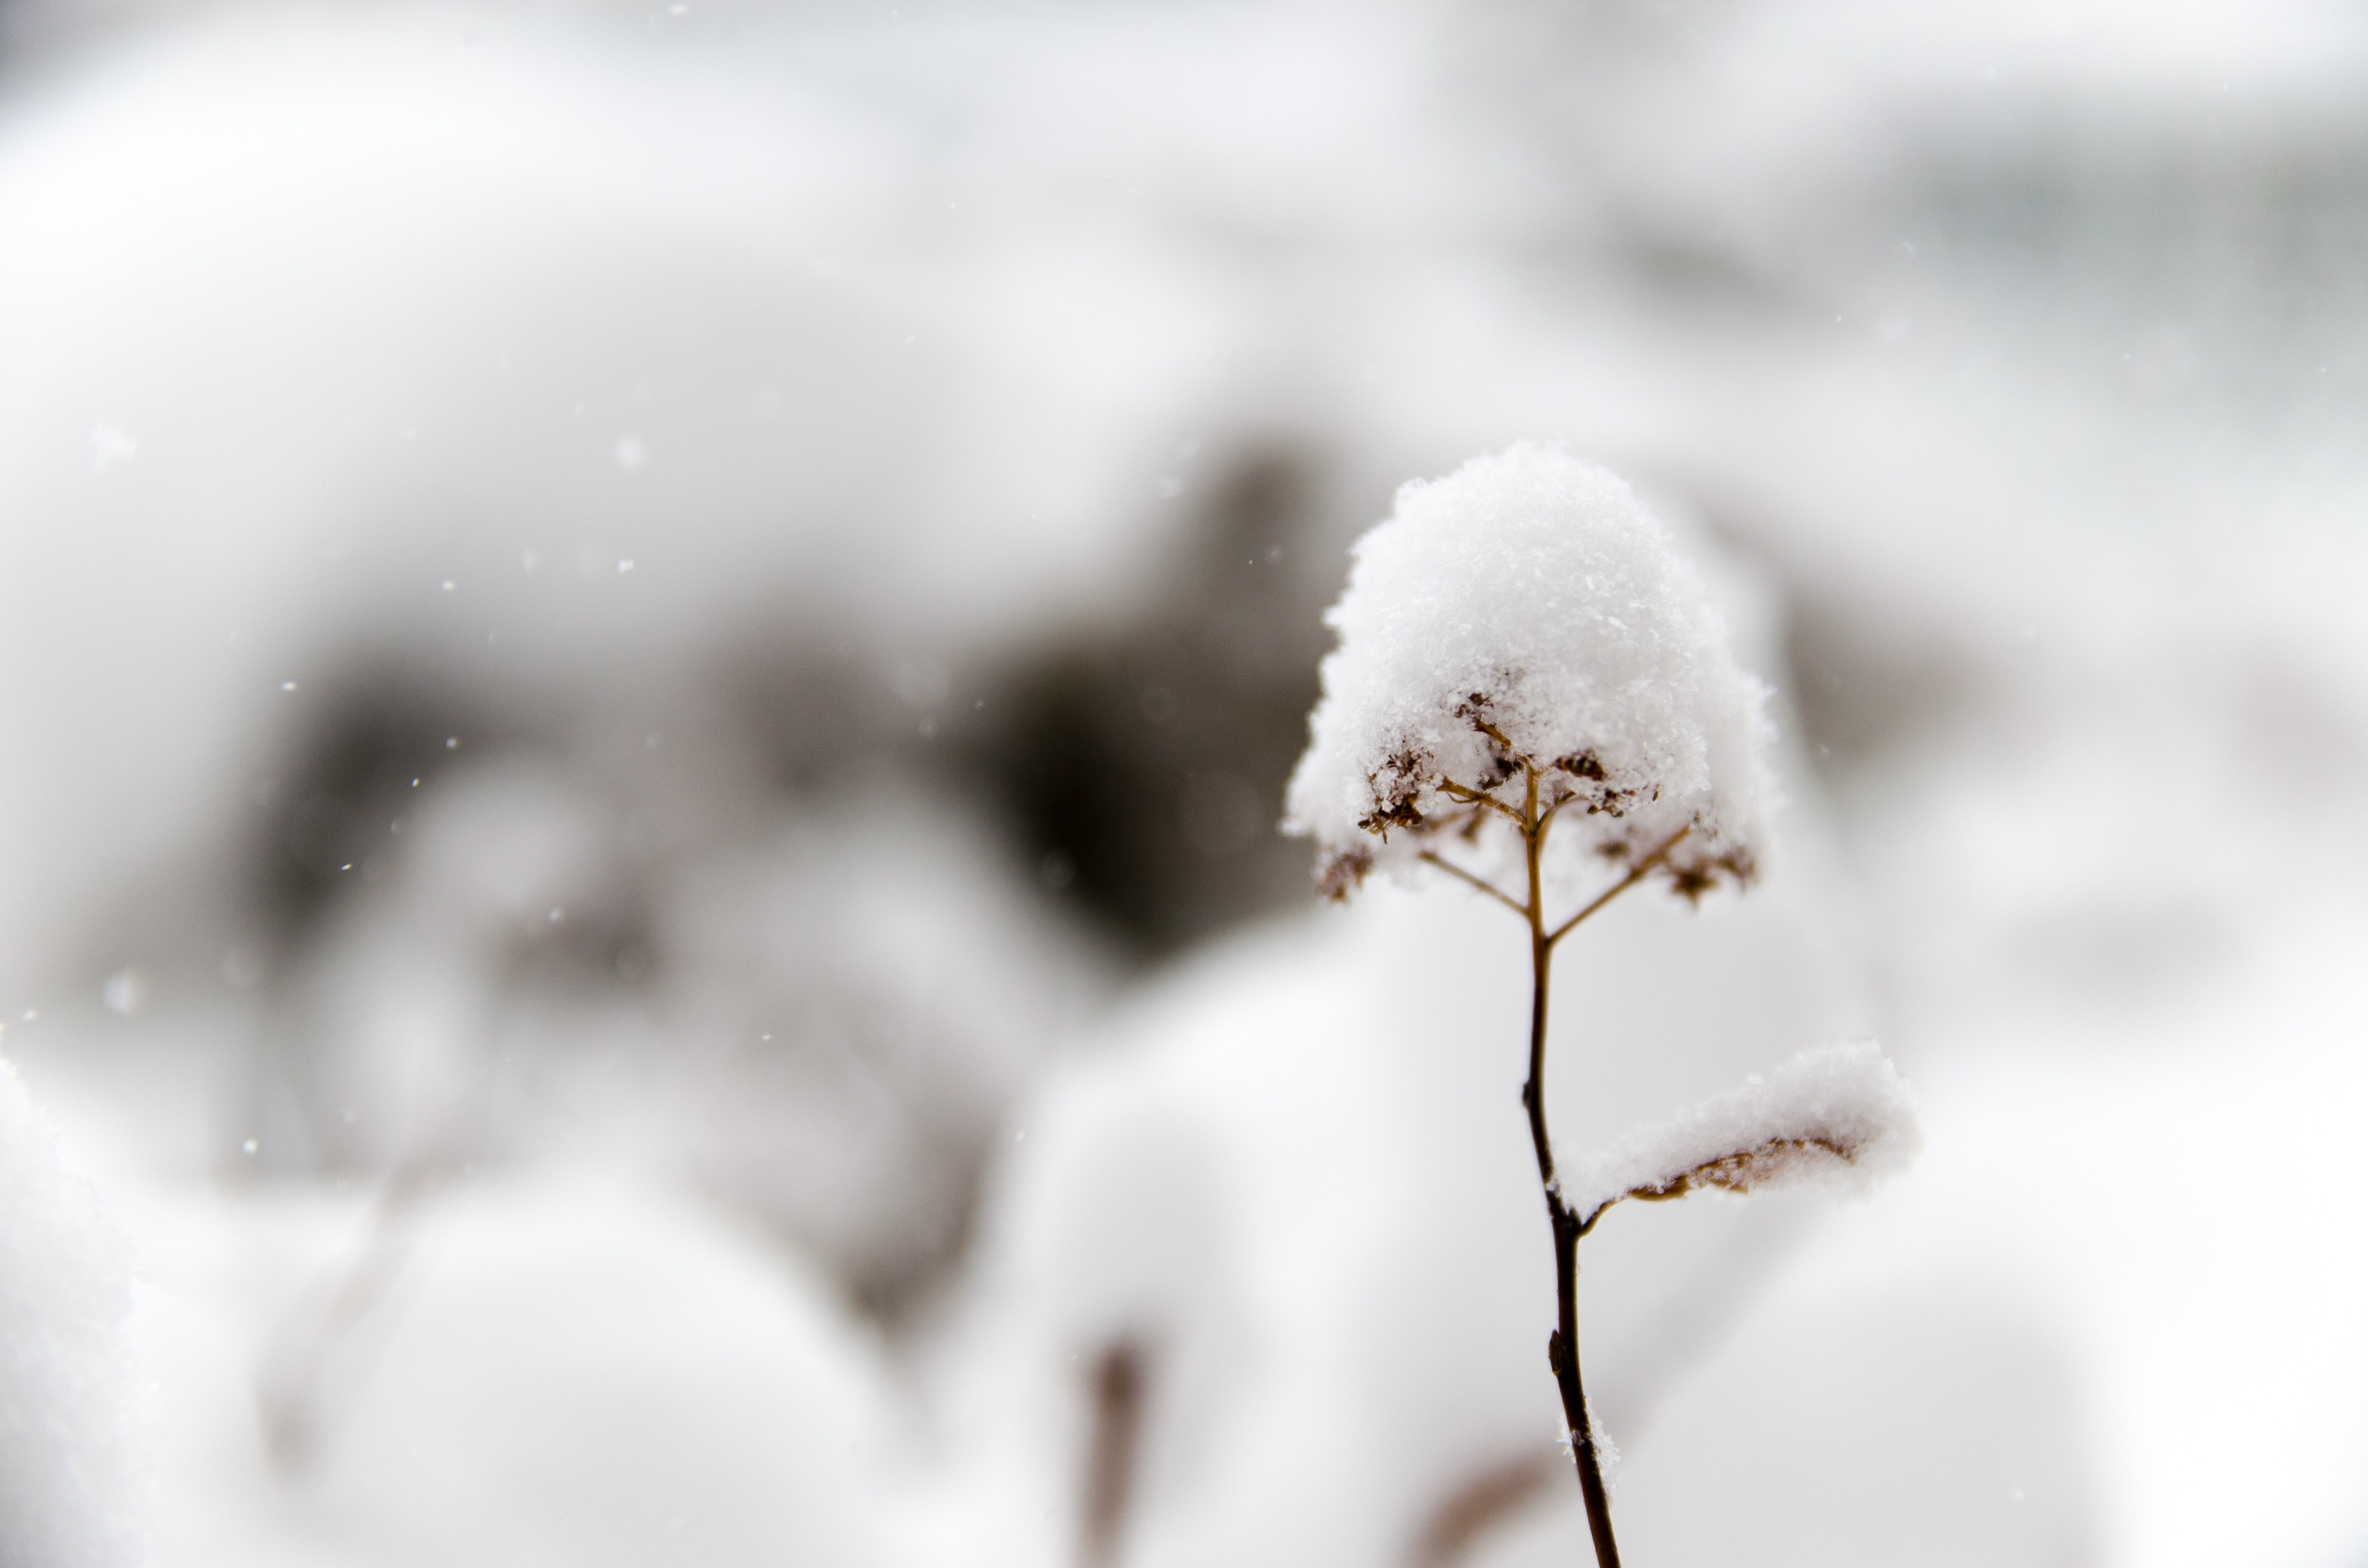 closeup photo of flower covered in snow